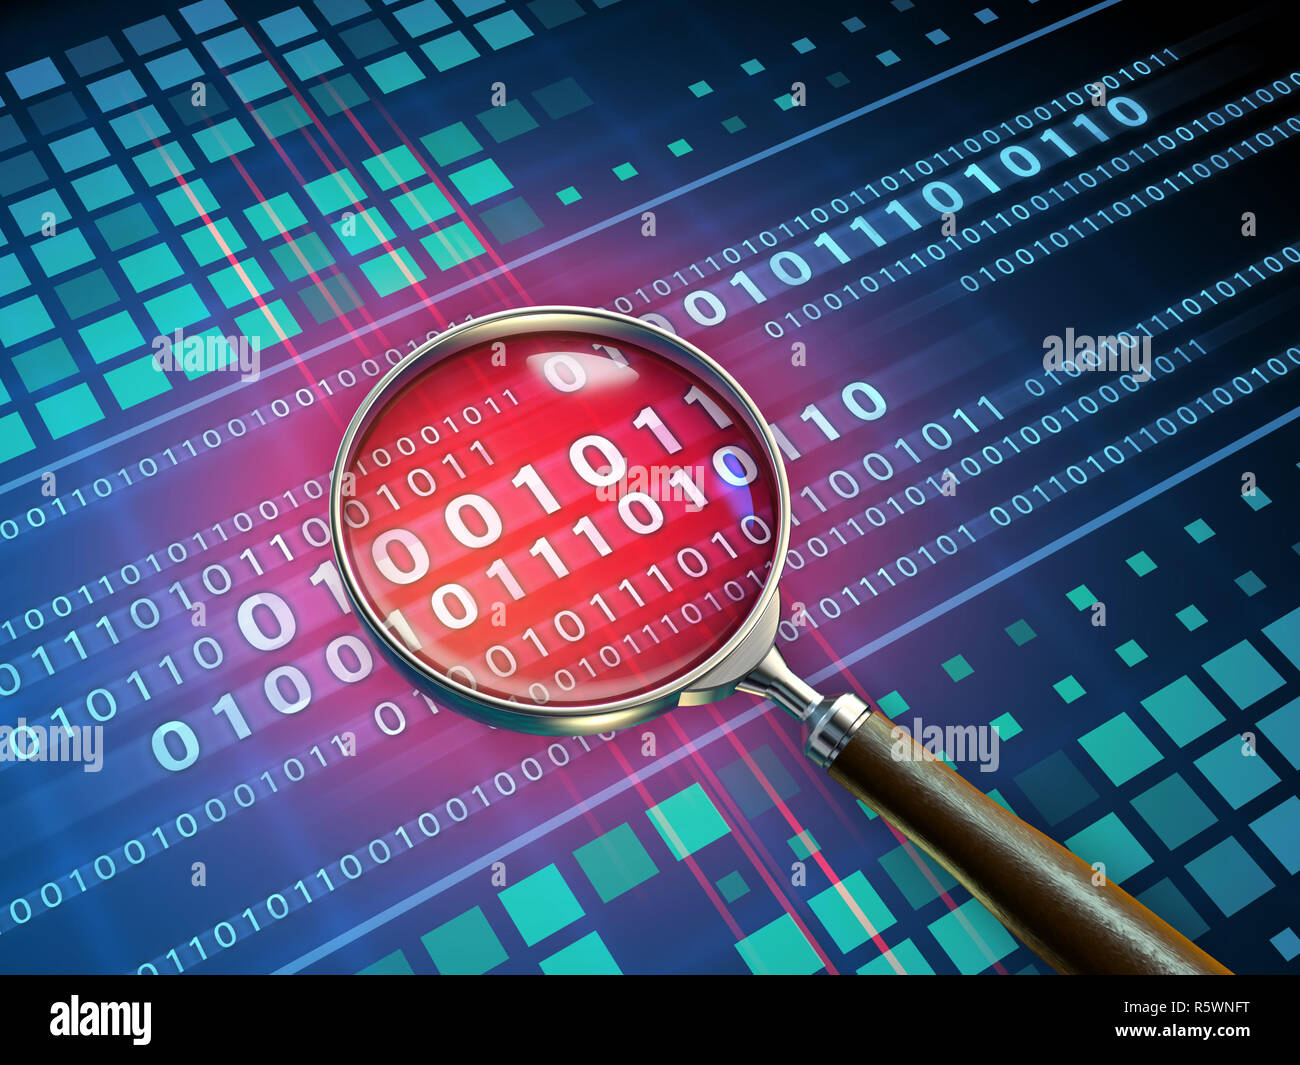 Magnifying glass inspecting some binary code. 3D illustration. - Stock Image